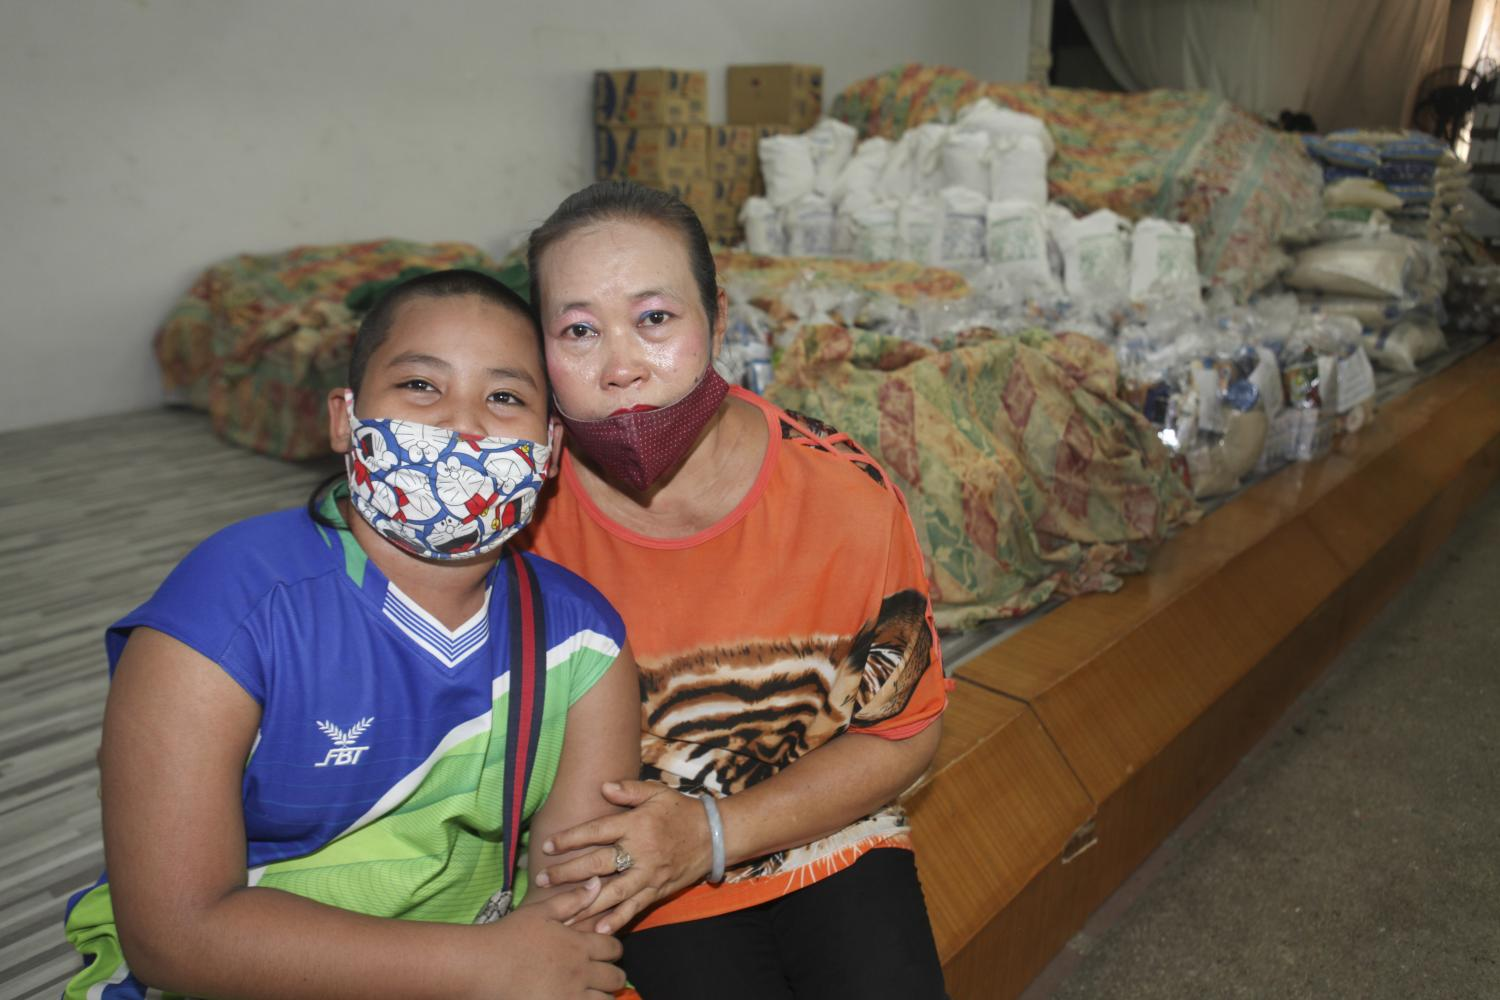 Hard times: Malee Boonmee, 49, and her 10-year-old adopted son Nong Pi have been hit by the lockdown, after Ms Malee lost her job. Her family now has no income and she doesn't know how she will support the education of her two sons when schools reopen in July.